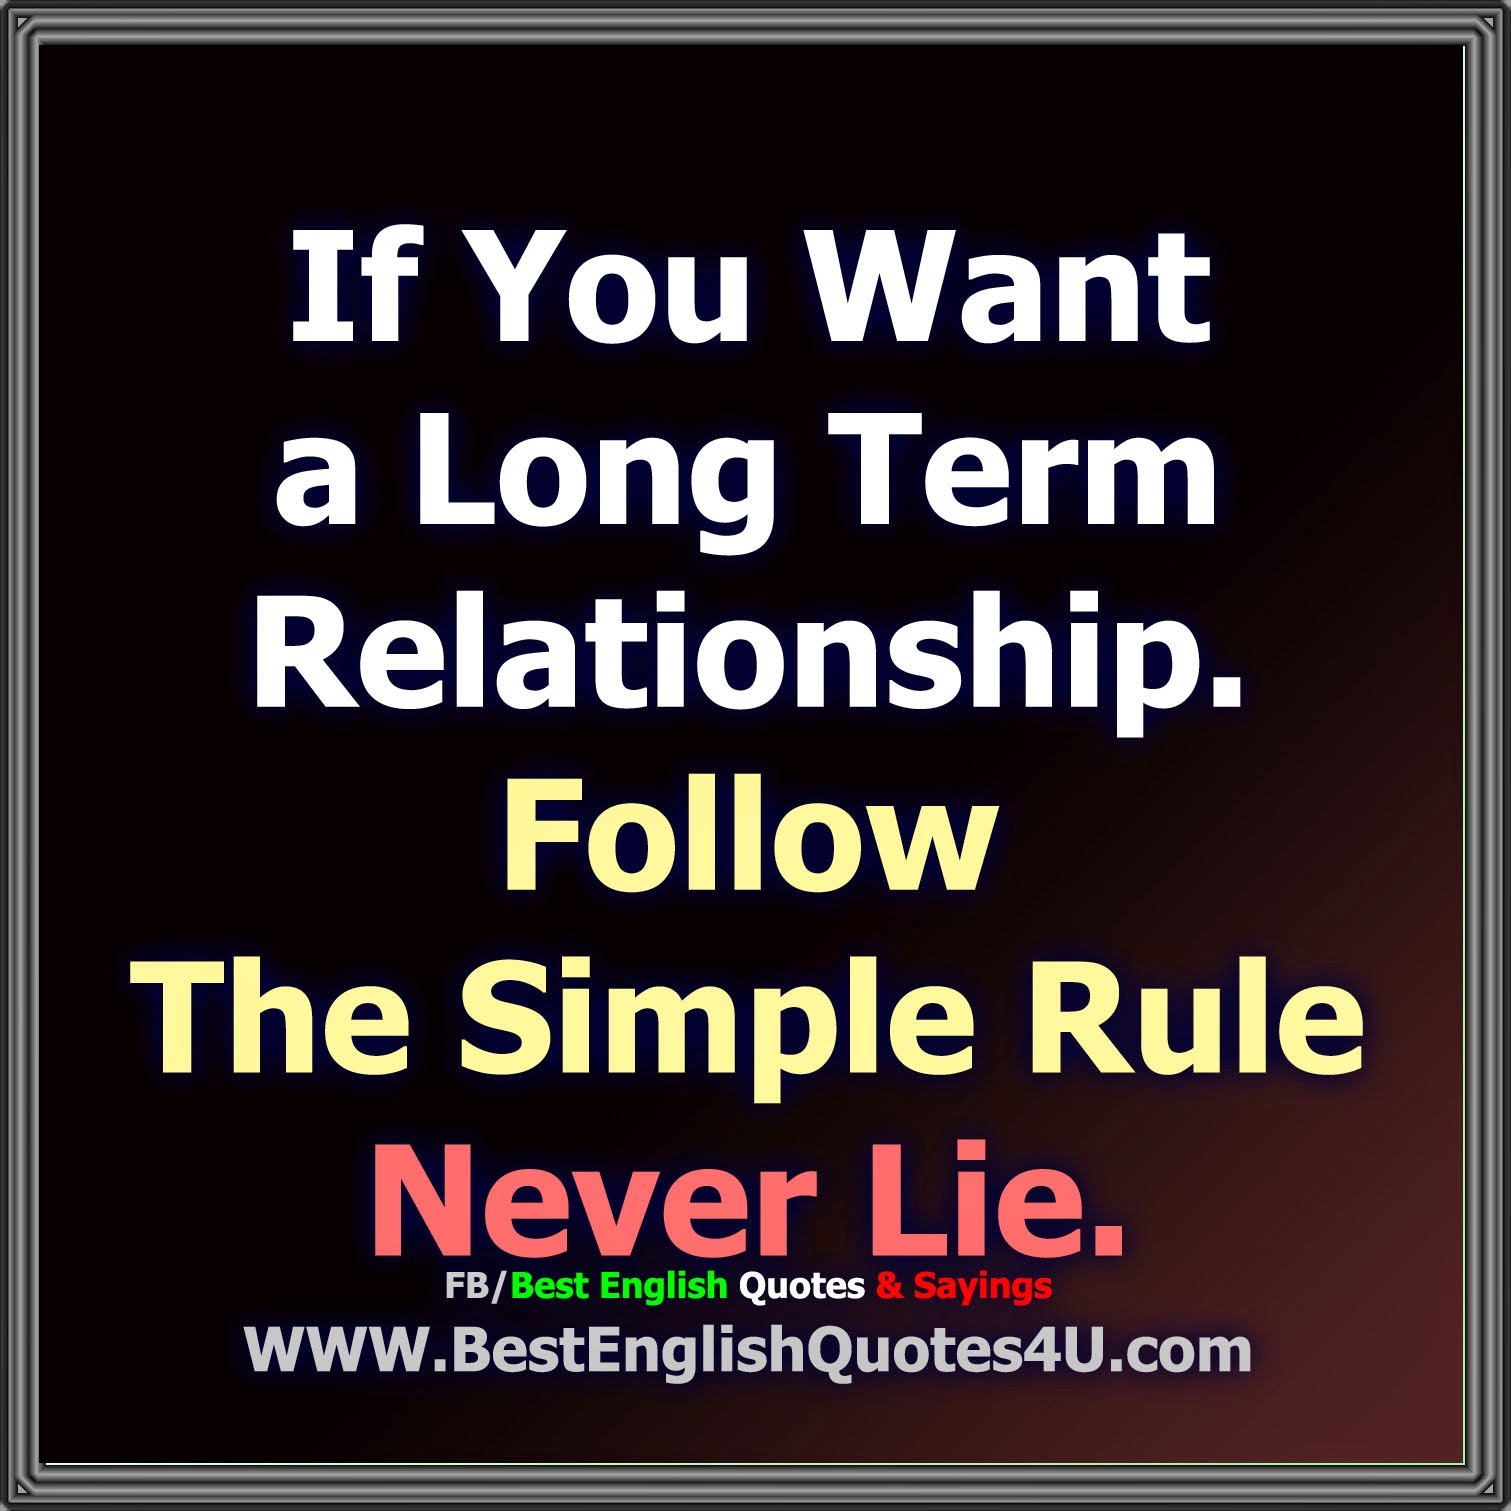 Best English Quotes About Life: If You Want A Long Term Relationship...